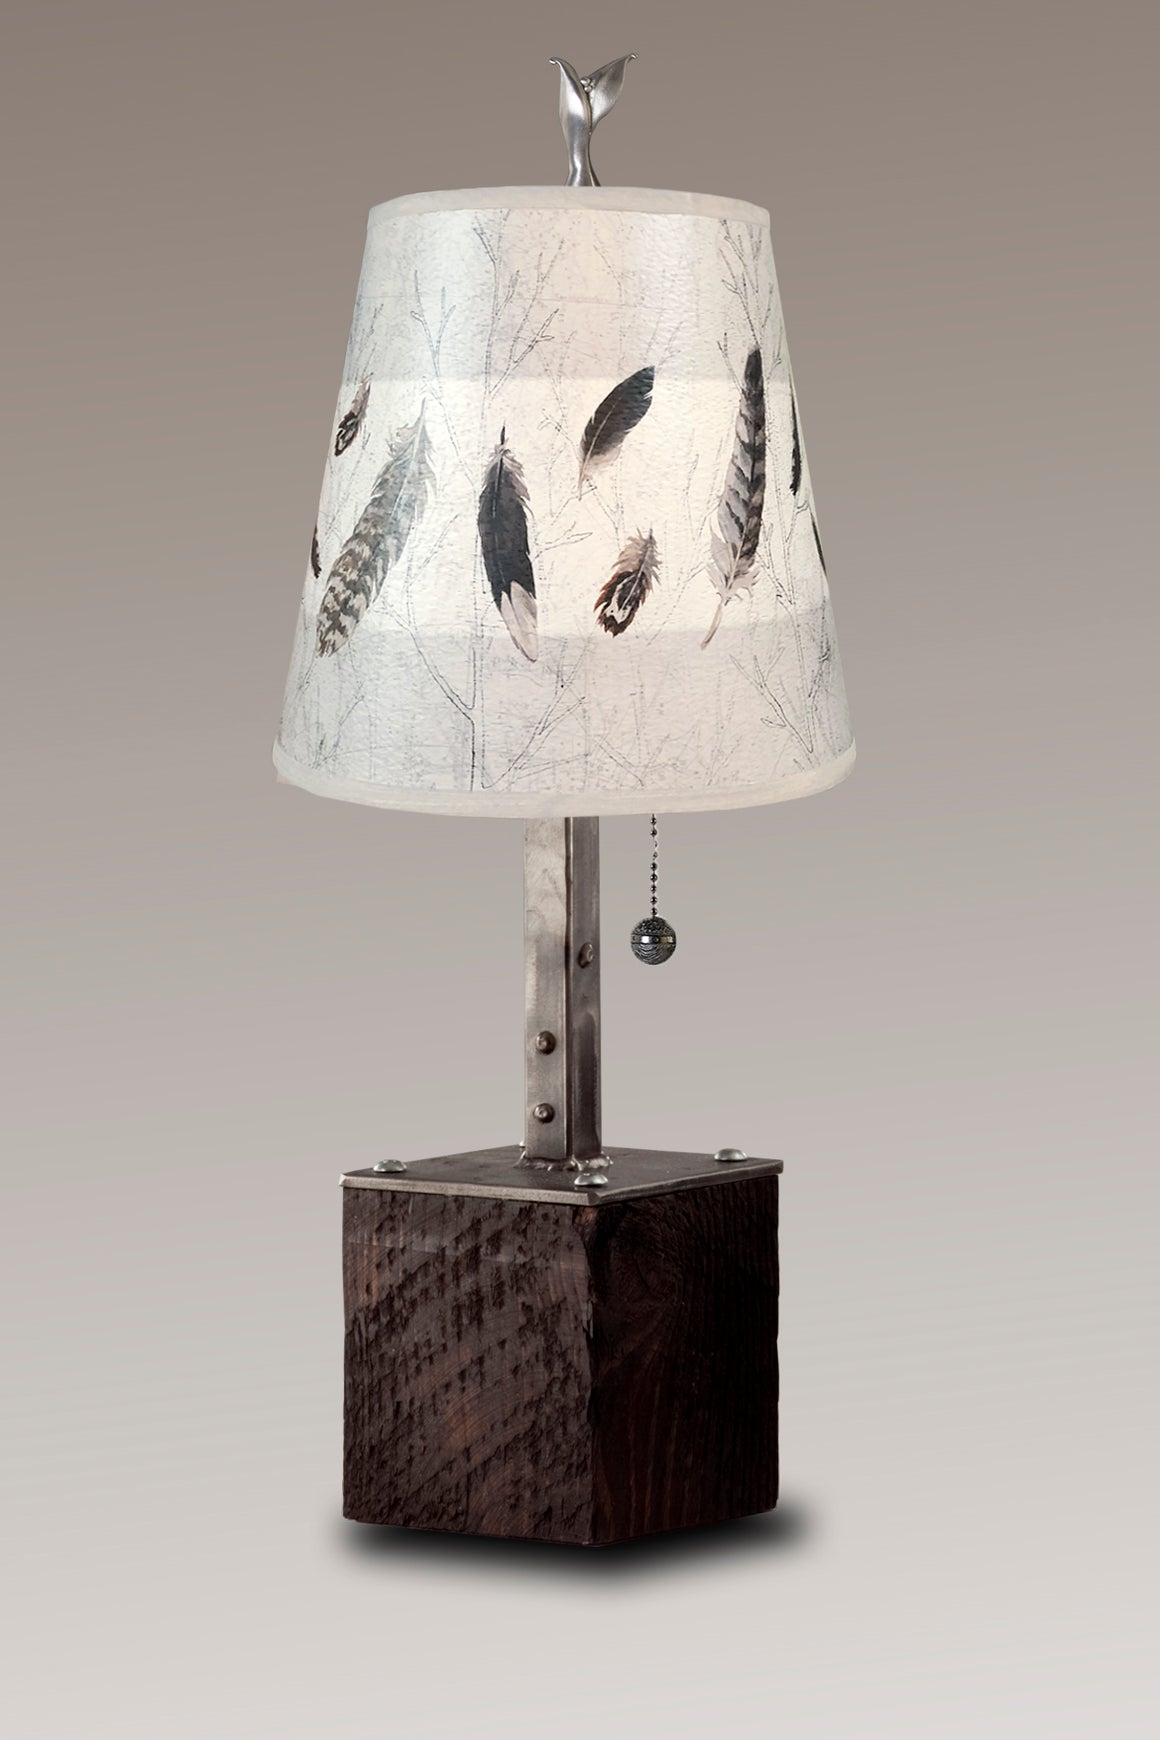 Steel Table Lamp on Reclaimed Wood with Small Drum Shade in Feathers in Pebble